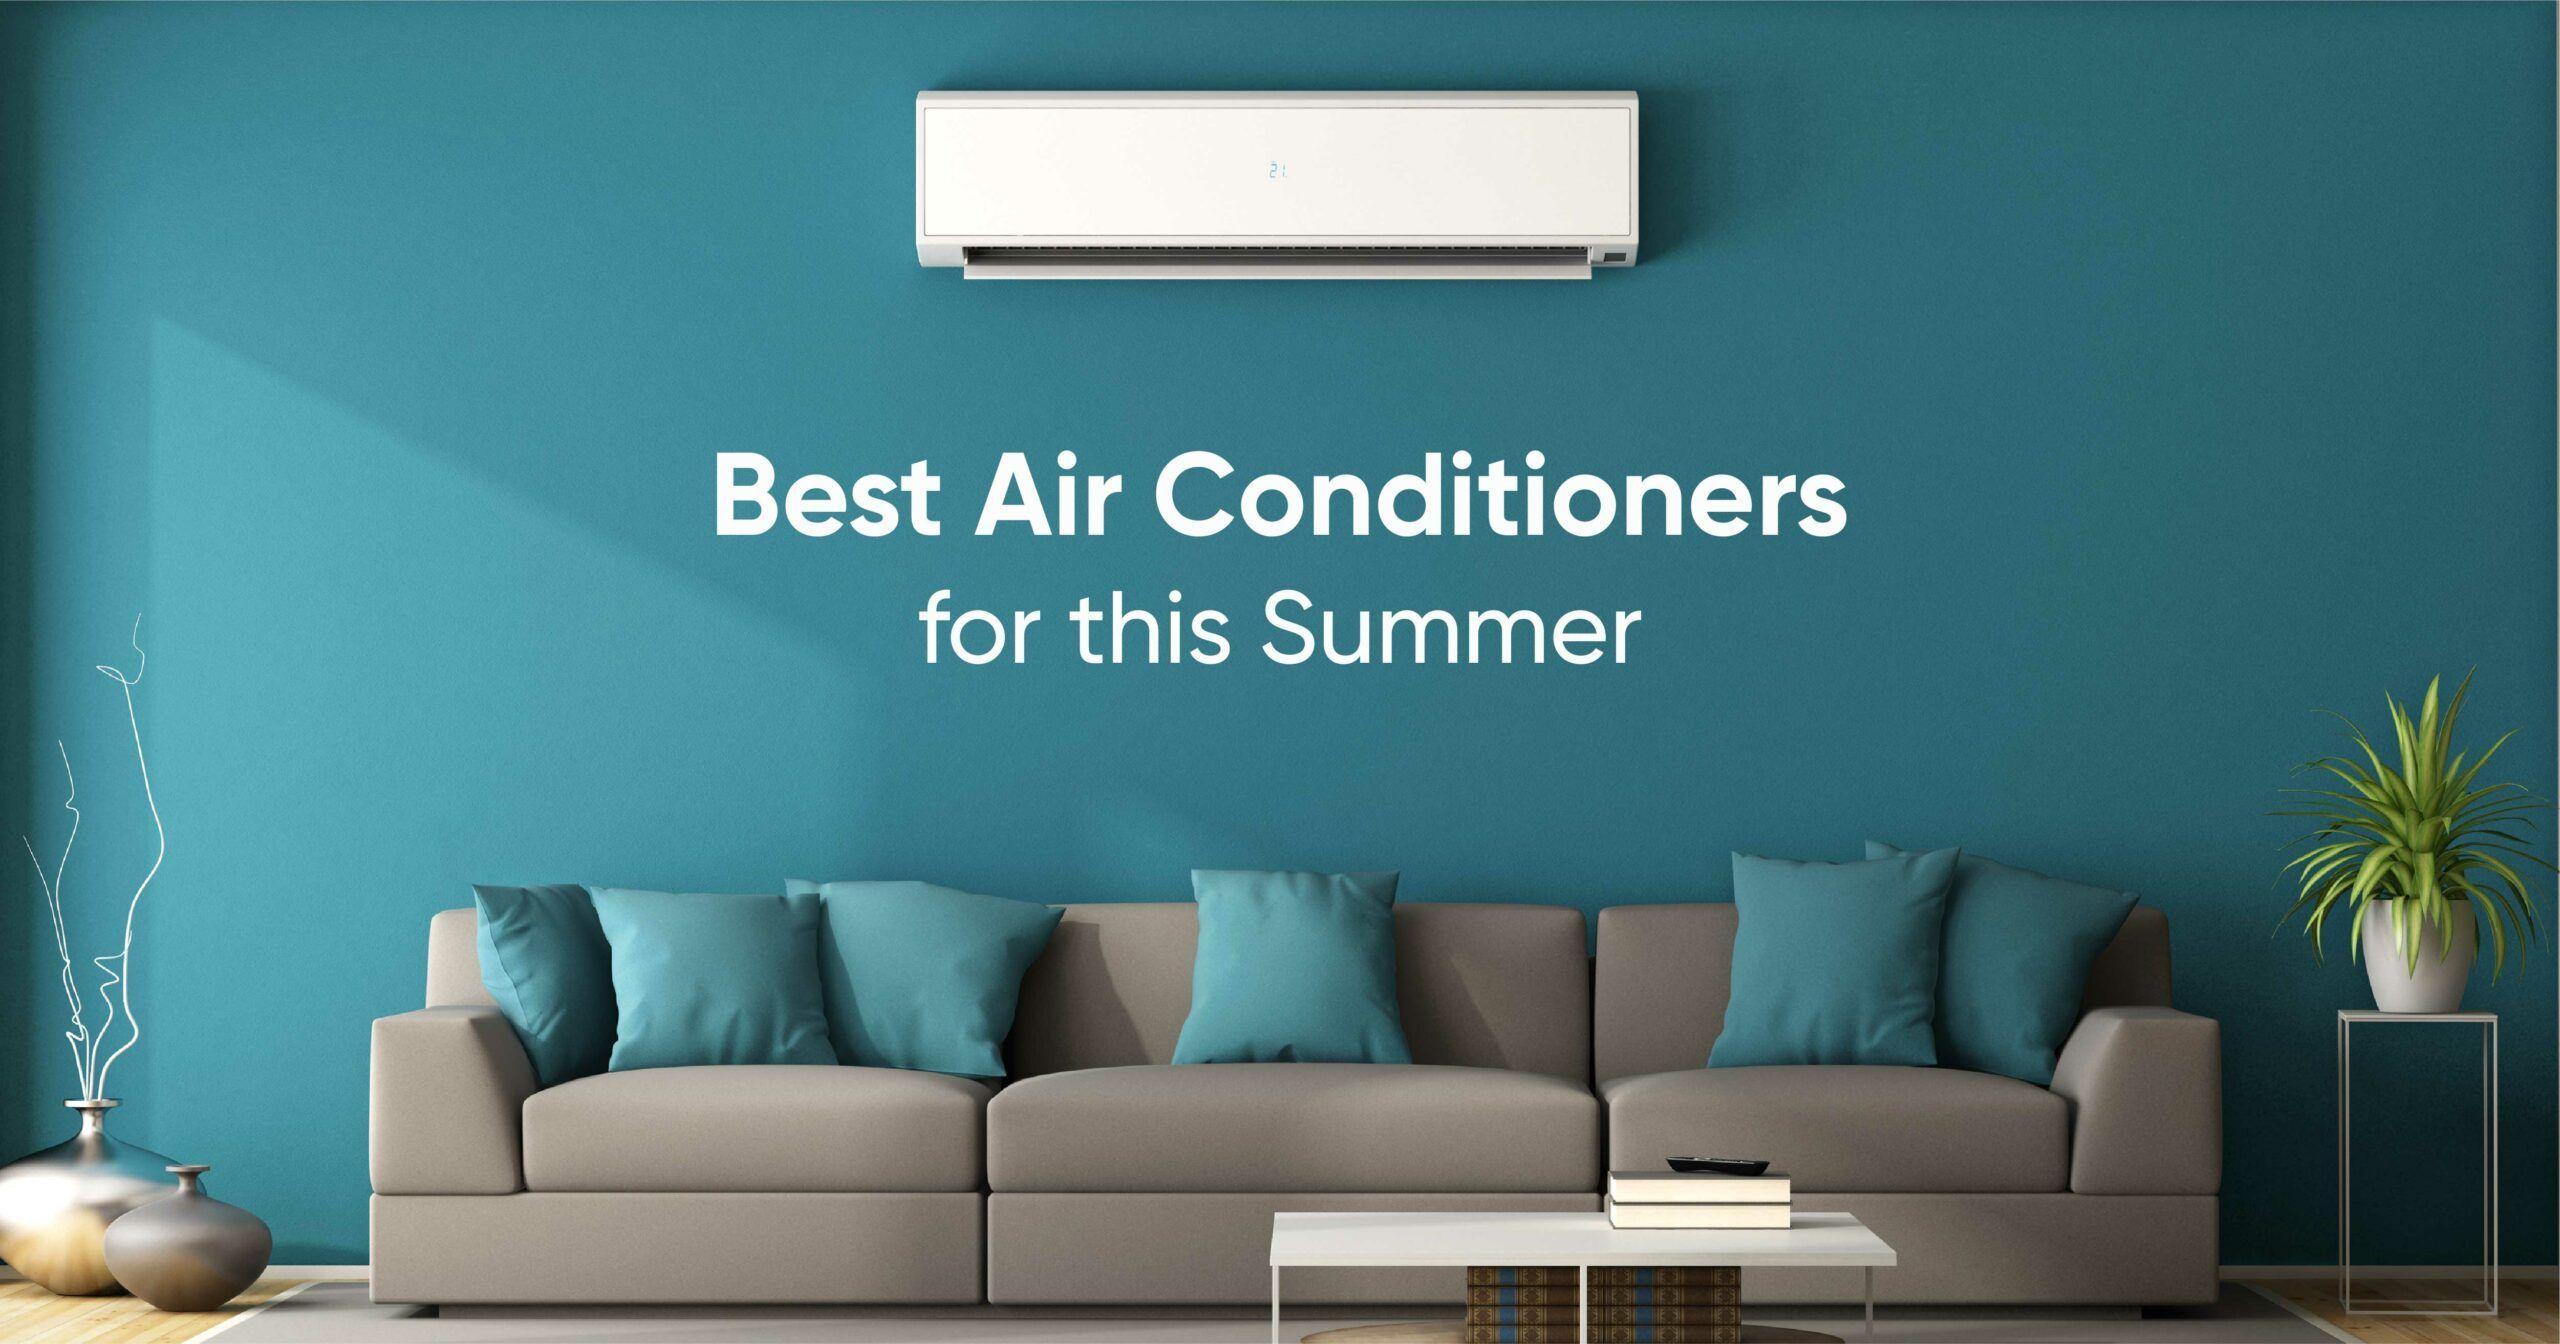 Top 5 Air Conditioners From Amazon to be Summer Ready